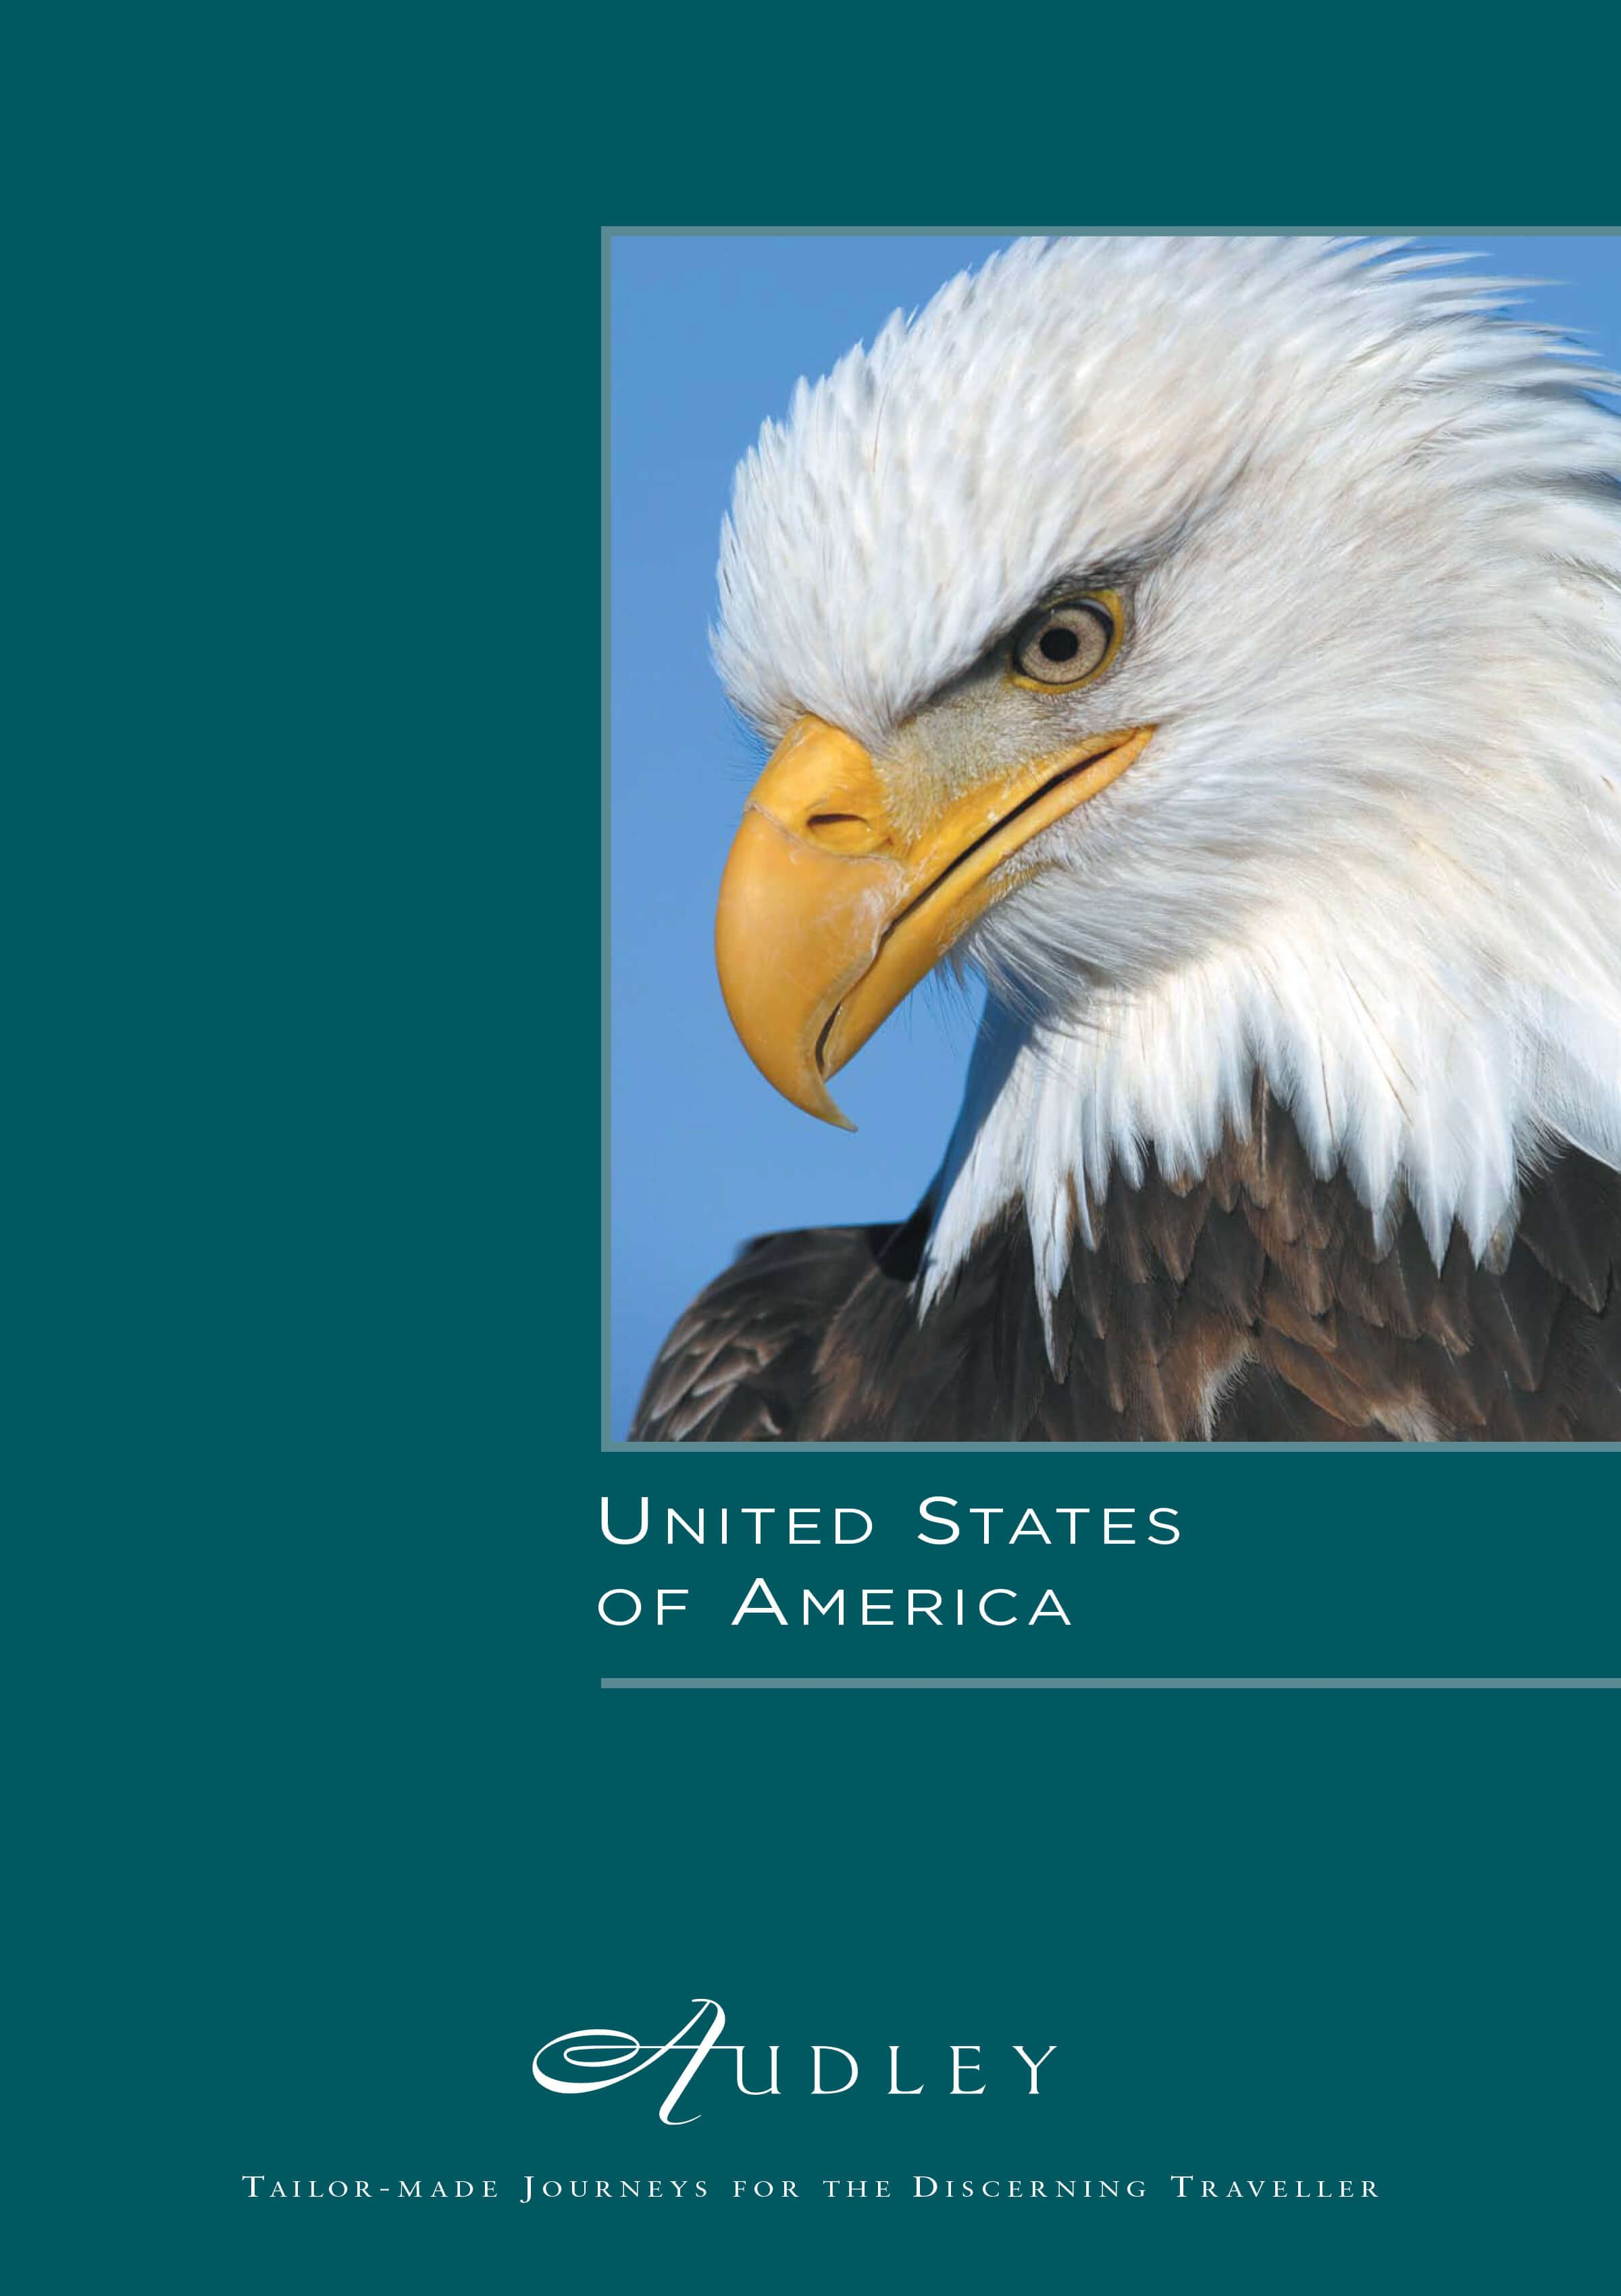 USA brochure cover